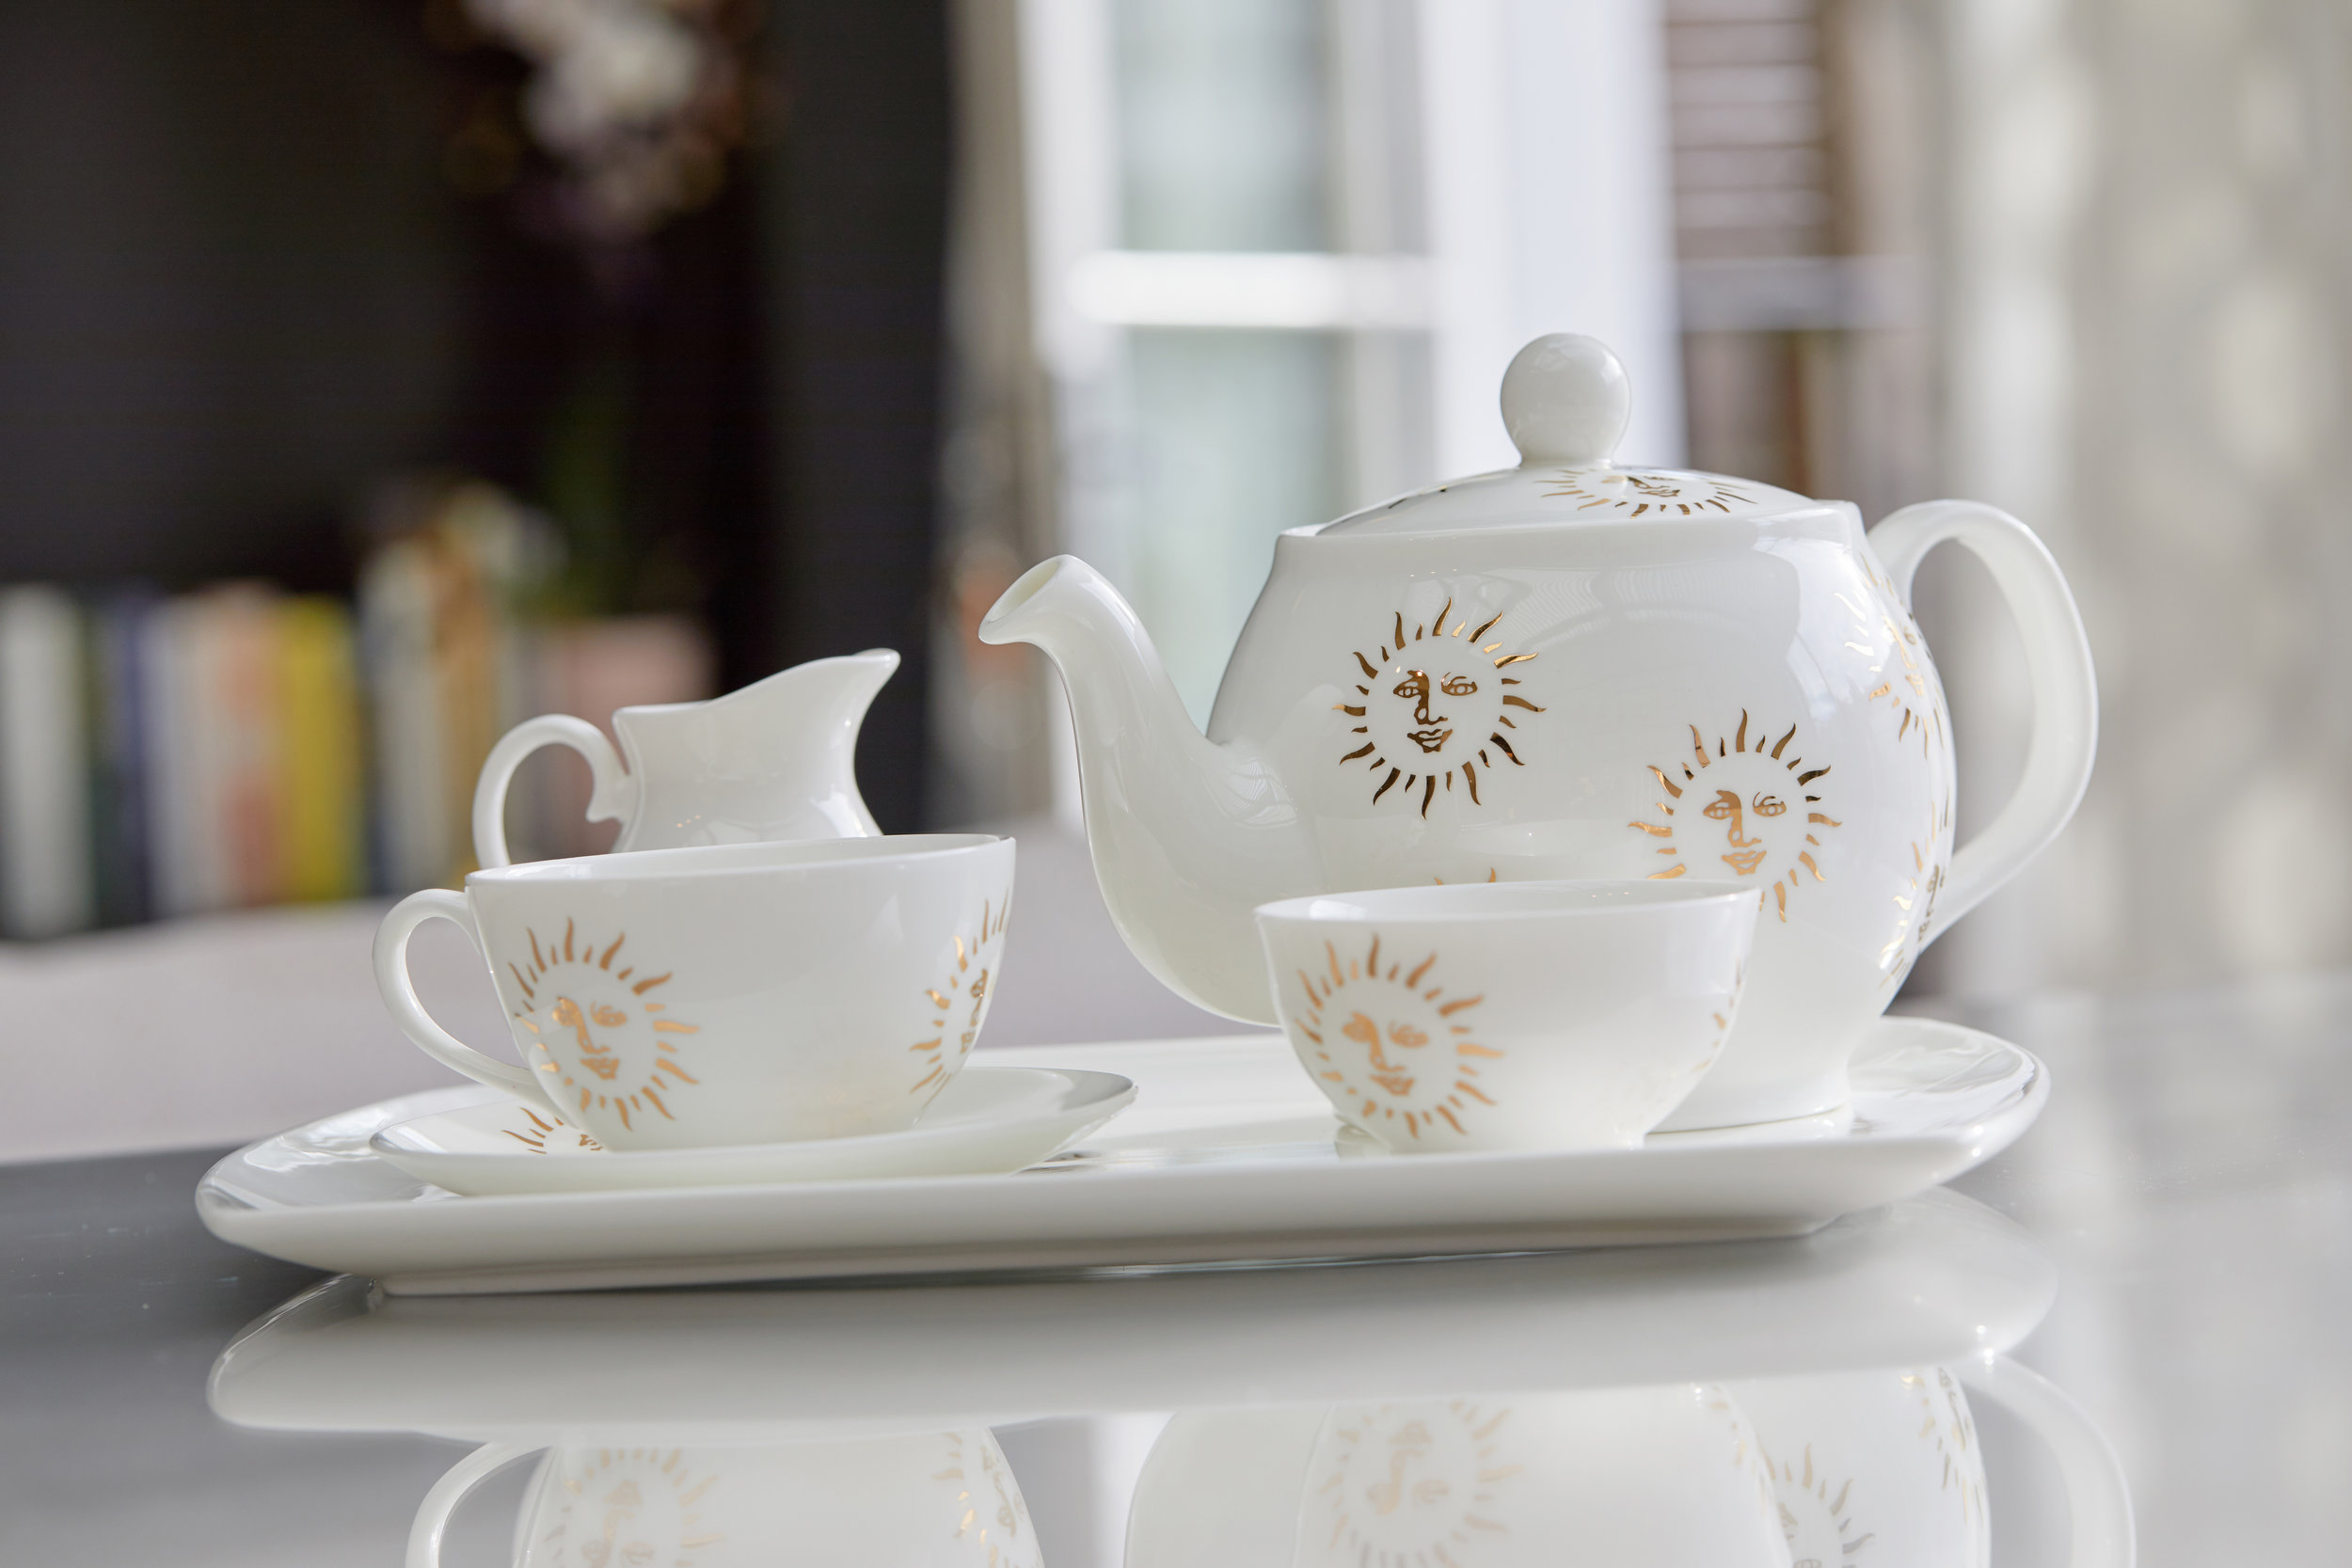 4 elegant tea sets for the perfect afternoon tea experience